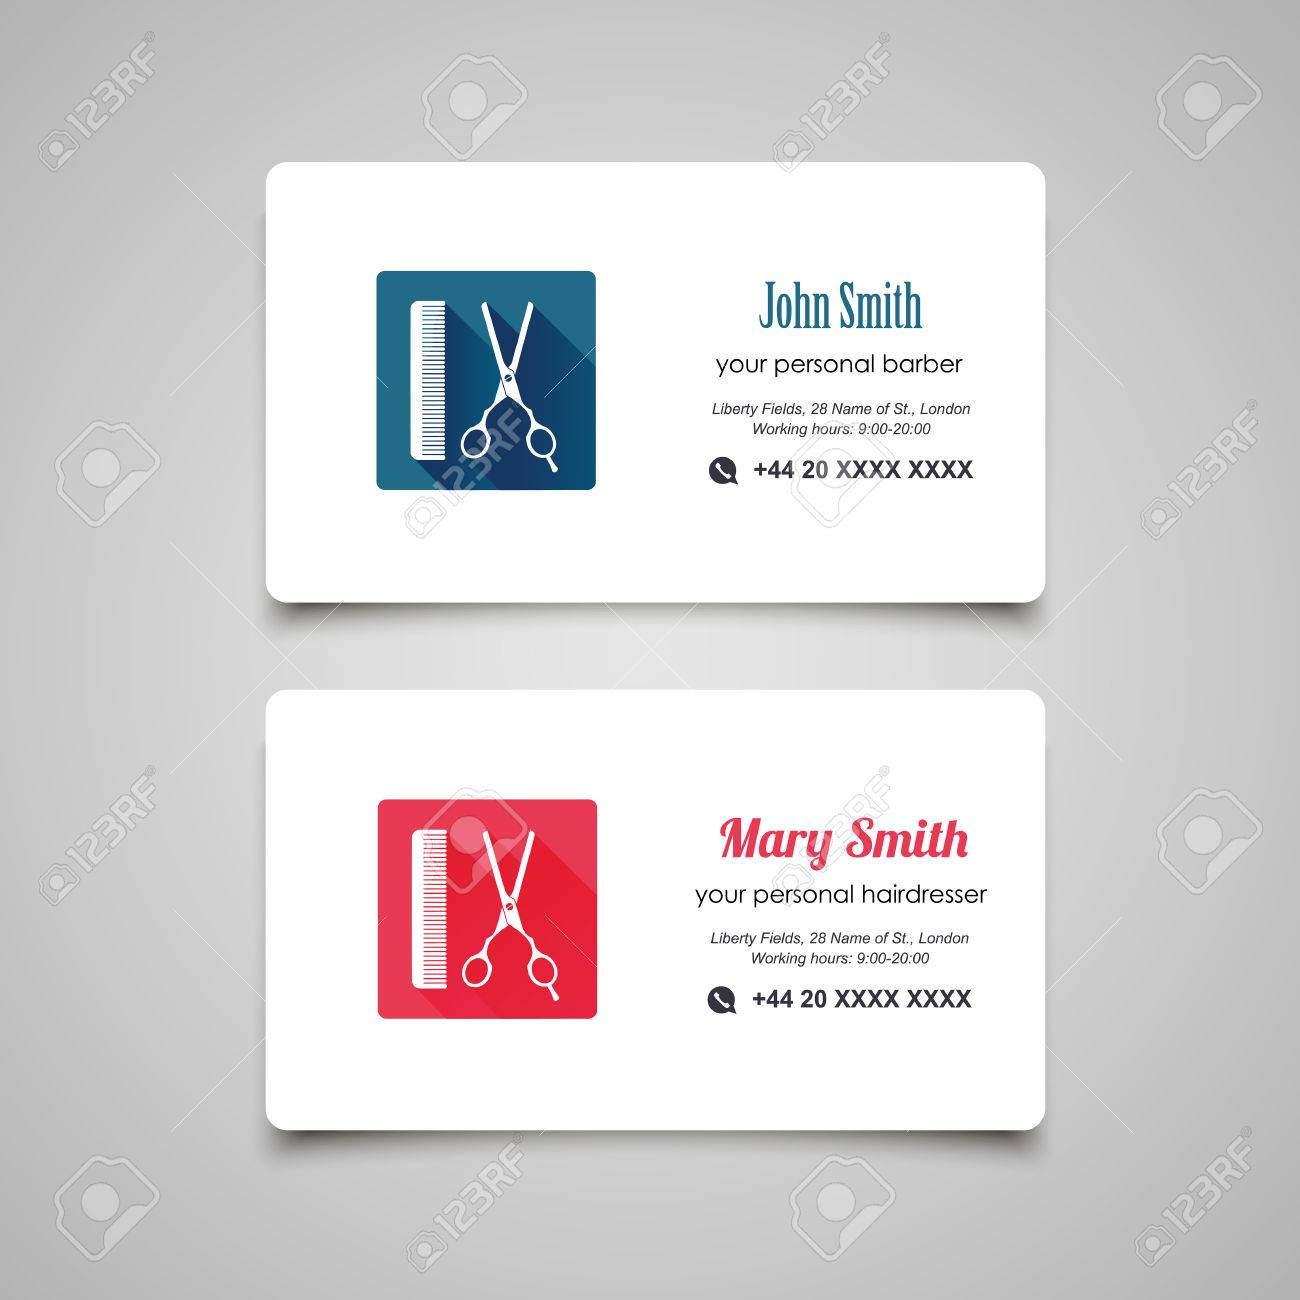 Hair salon barber shop business card design template royalty free hair salon barber shop business card design template stock vector 39315881 wajeb Image collections